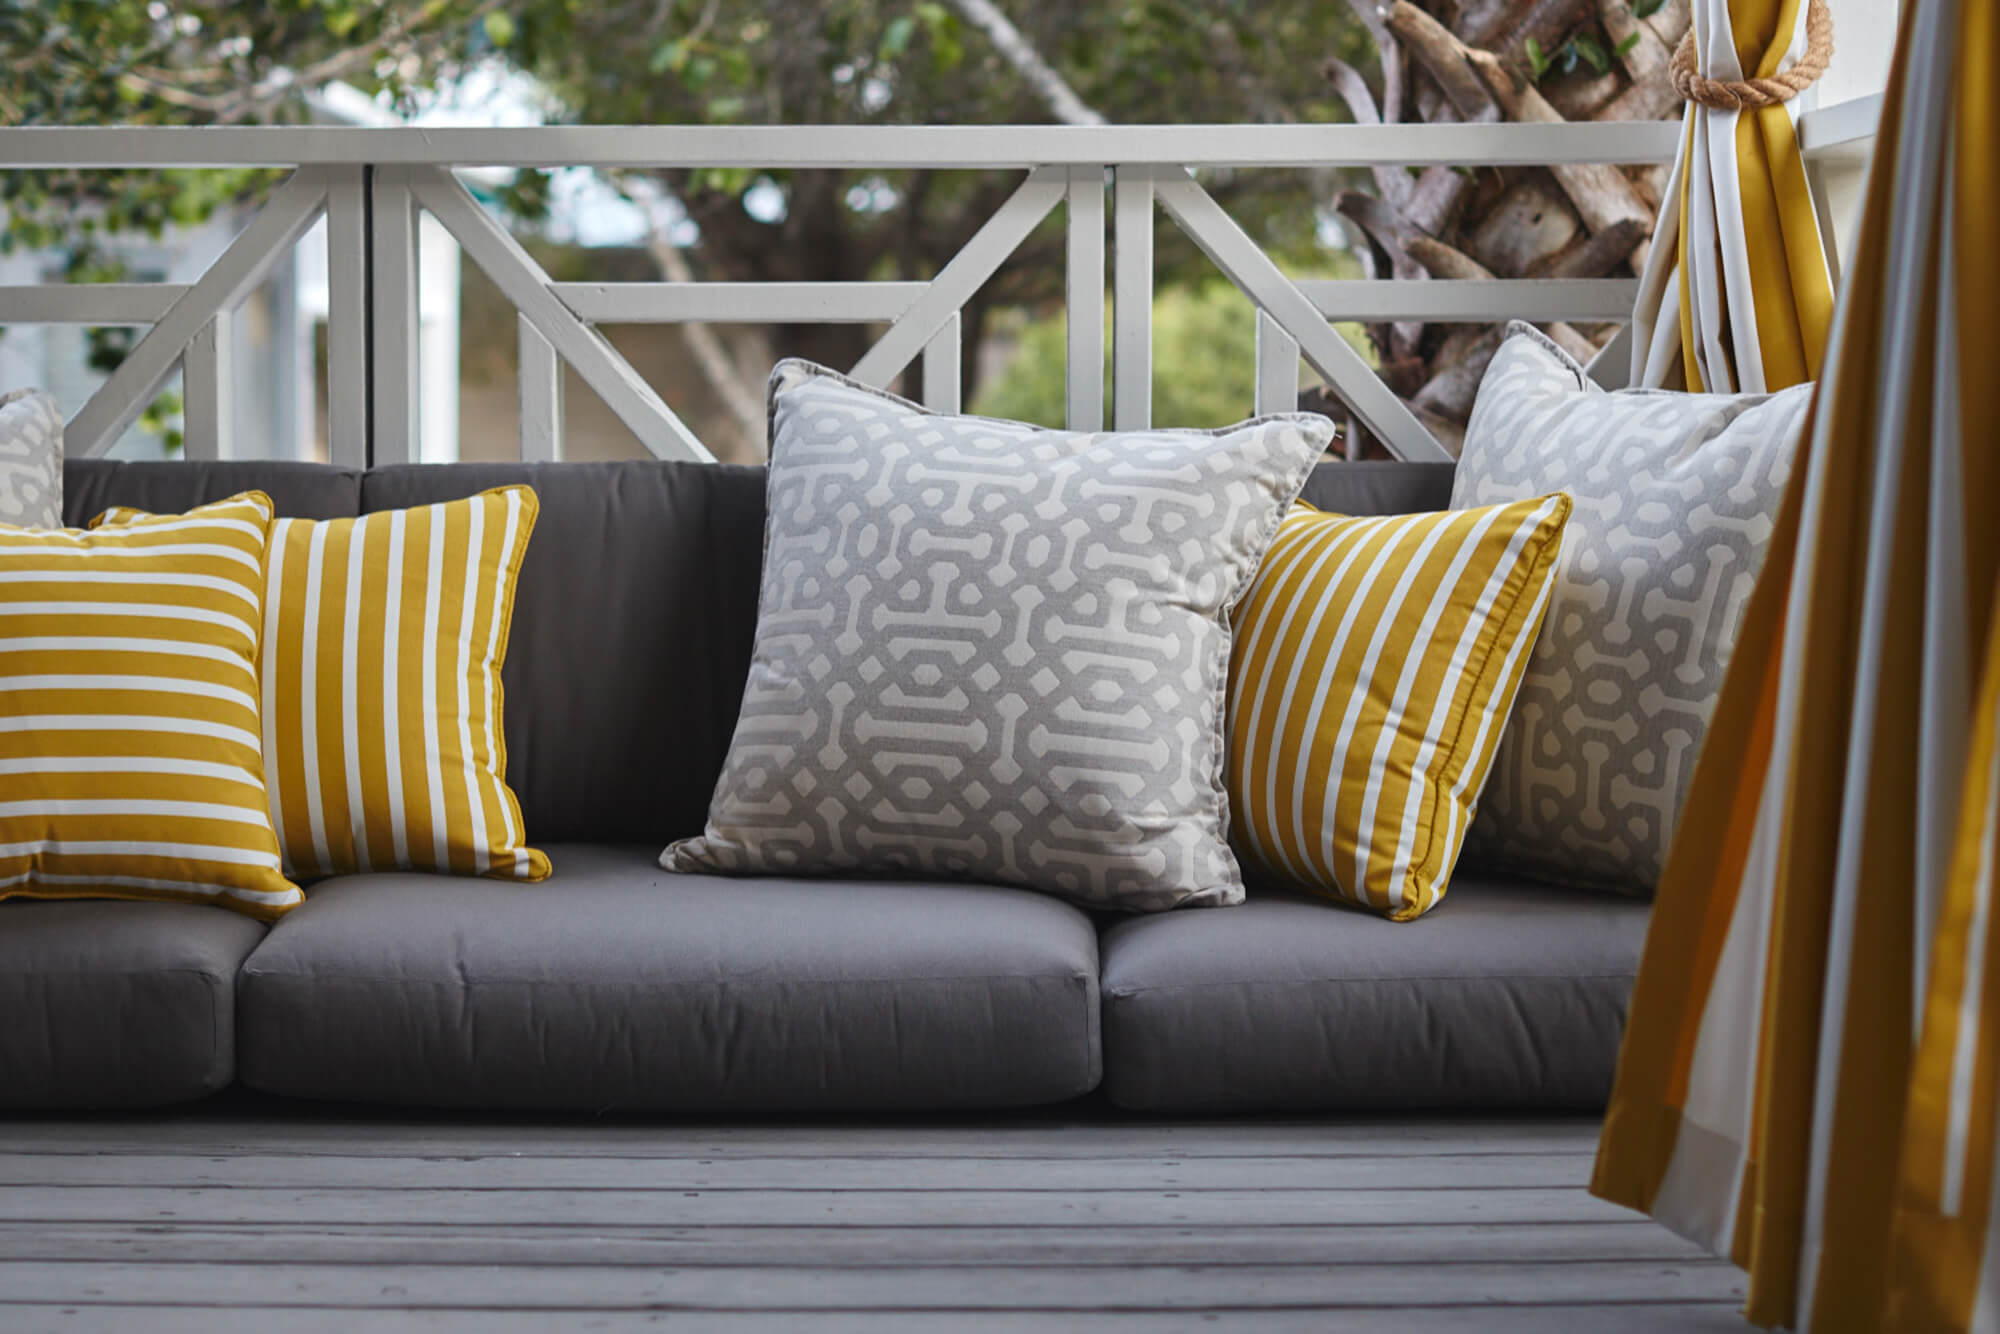 outdoor sofa cushions sunbrella west elm bliss uk telas para el hogar - interior y las ...